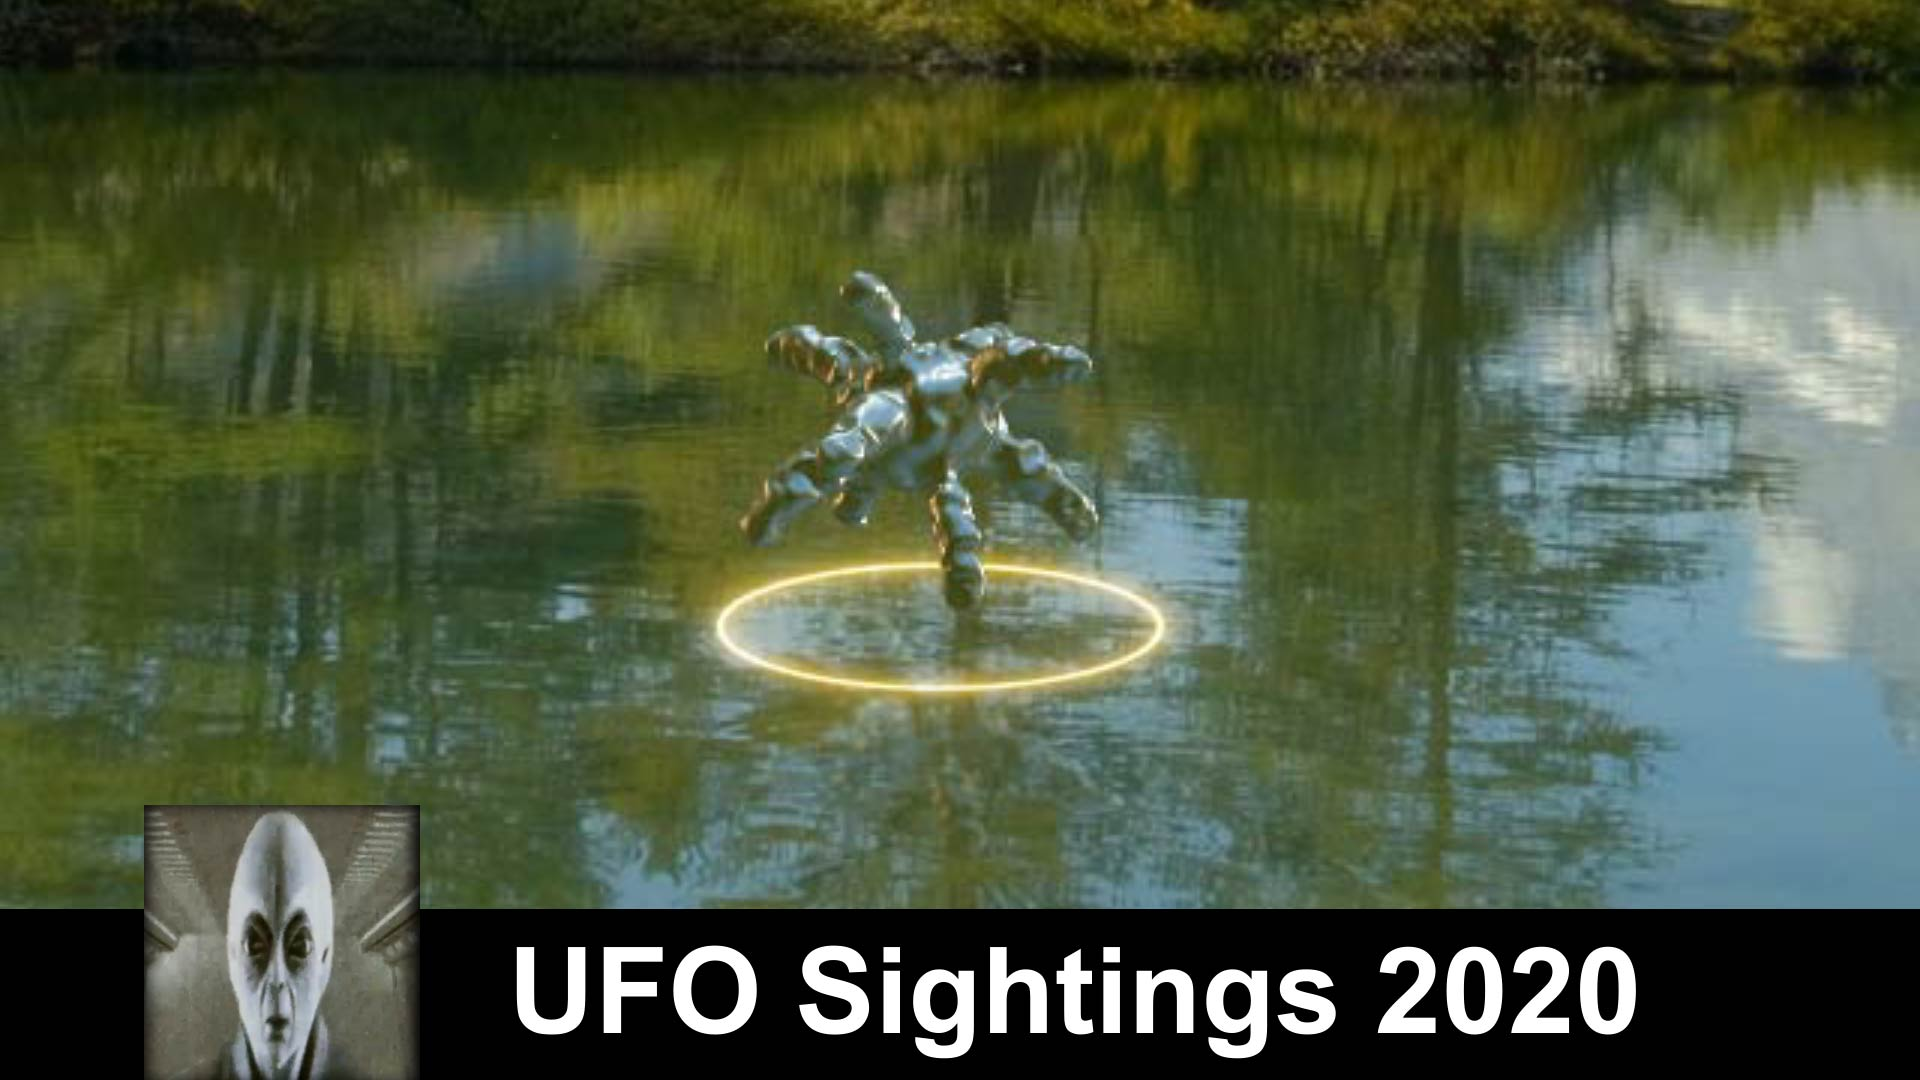 UFO Sightings 2020 They Are Testing Something